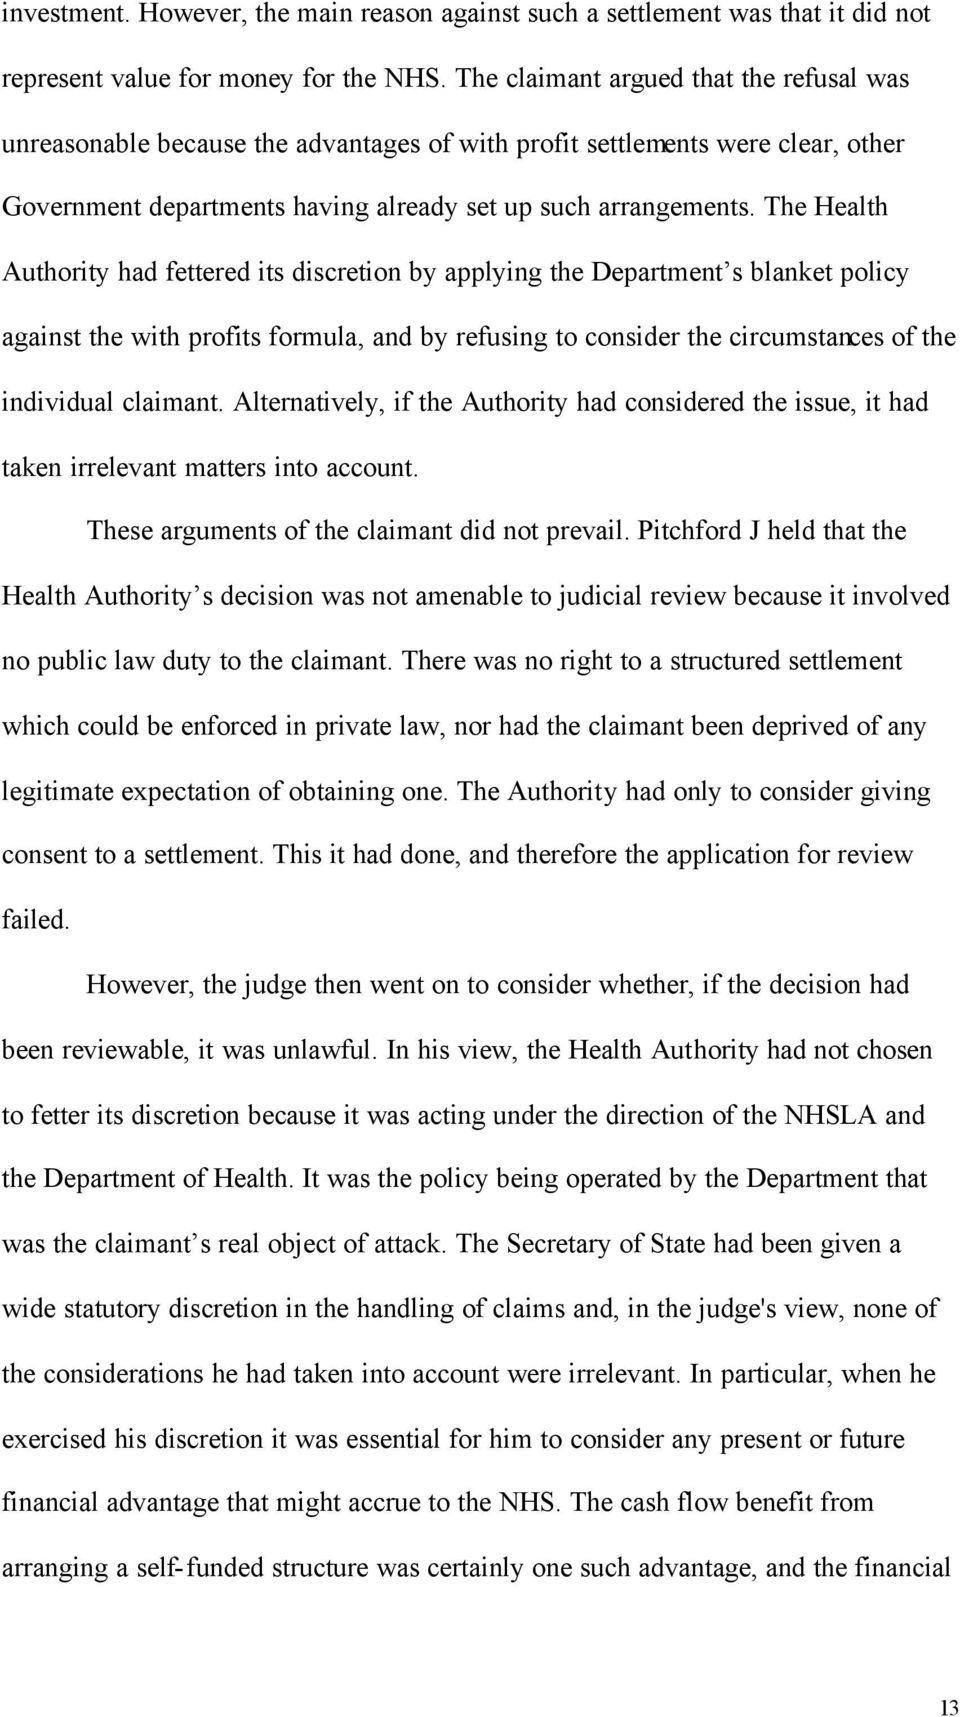 The Health Authority had fettered its discretion by applying the Department s blanket policy against the with profits formula, and by refusing to consider the circumstances of the individual claimant.